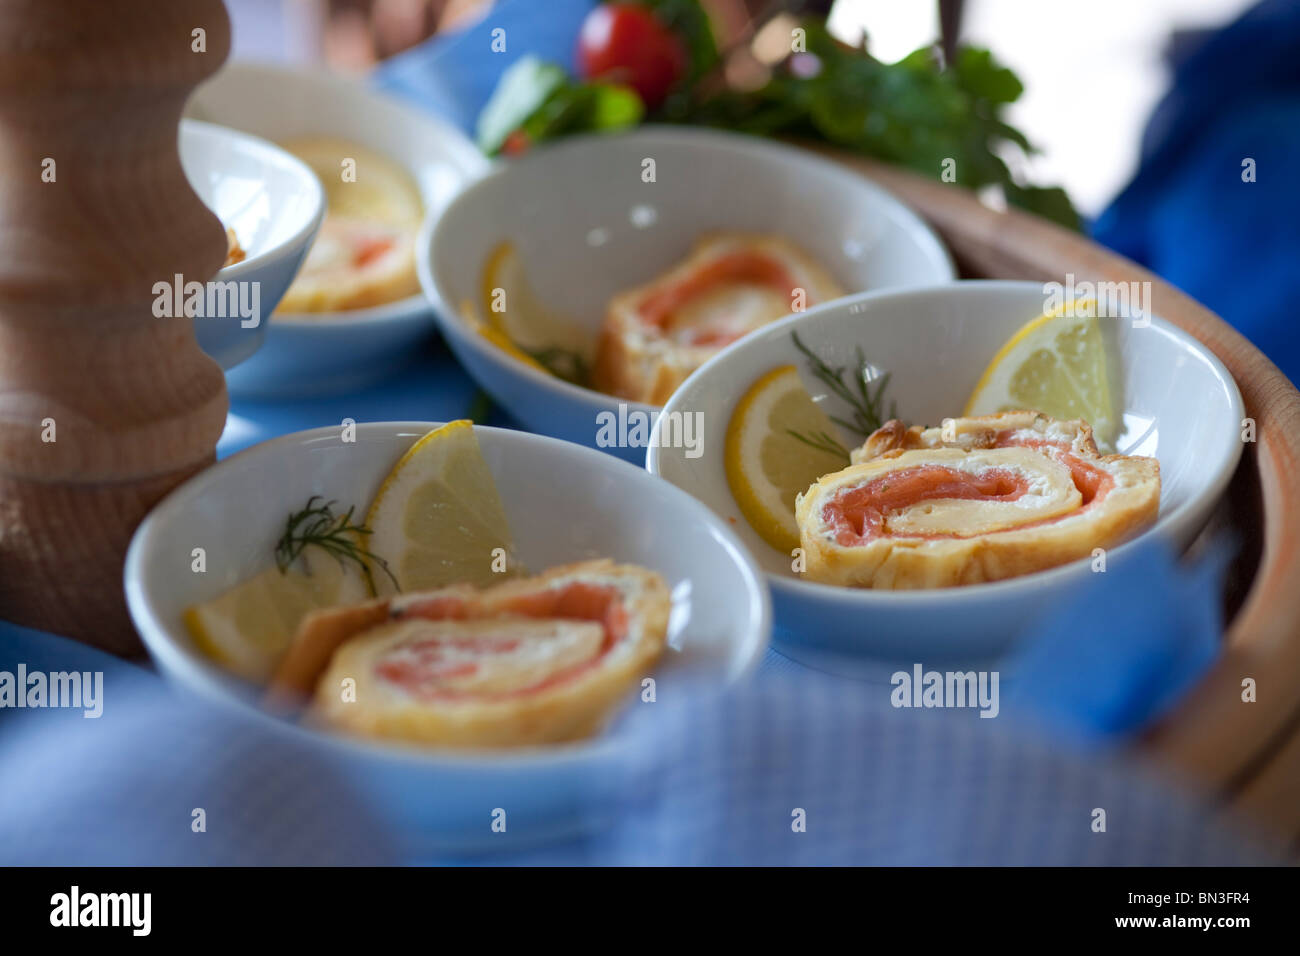 Appetiser with salmon in small bowls, close-up - Stock Image